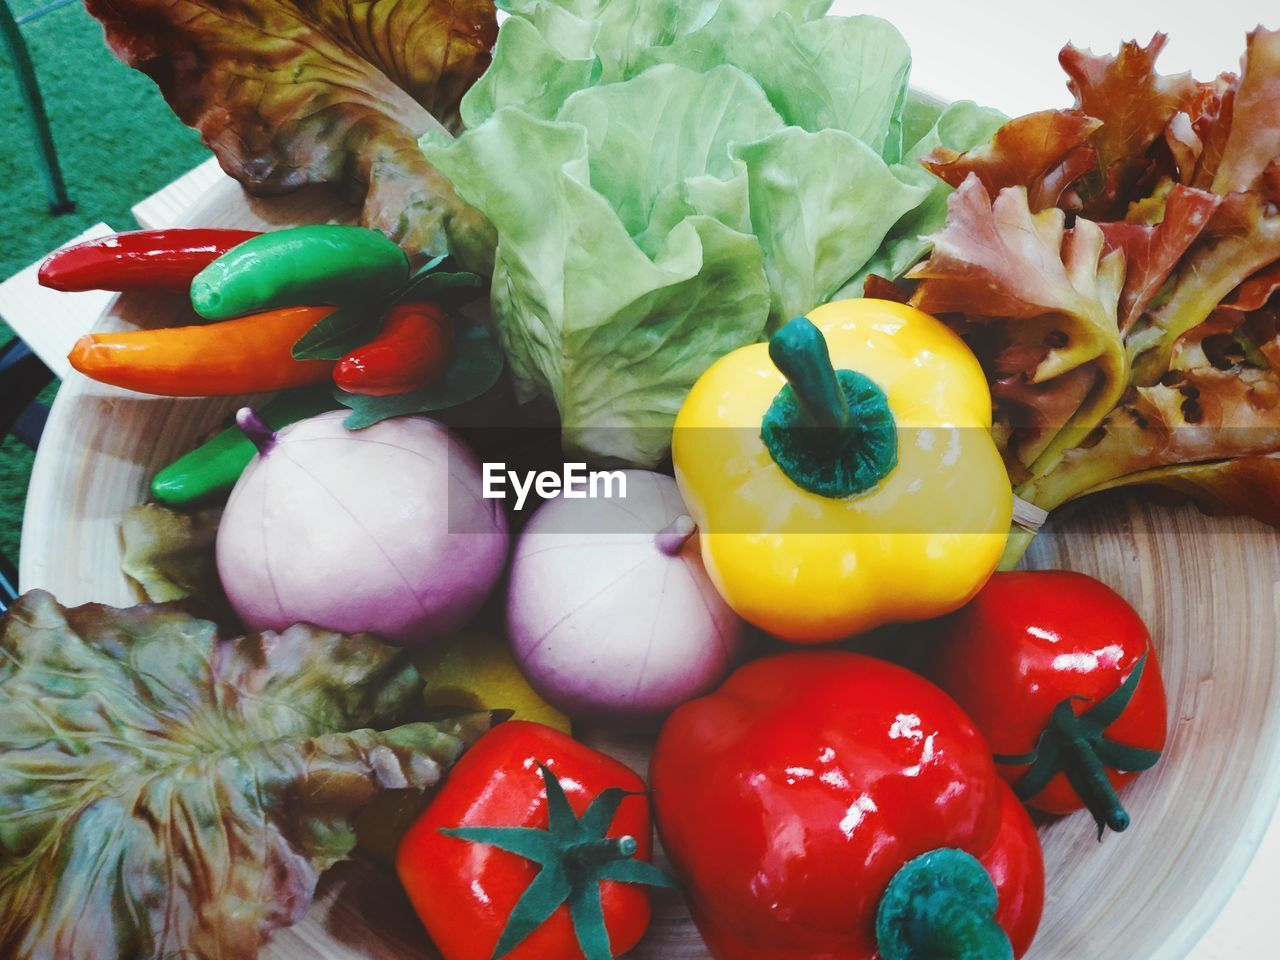 CLOSE-UP OF MULTI COLORED BELL PEPPERS IN PLATE